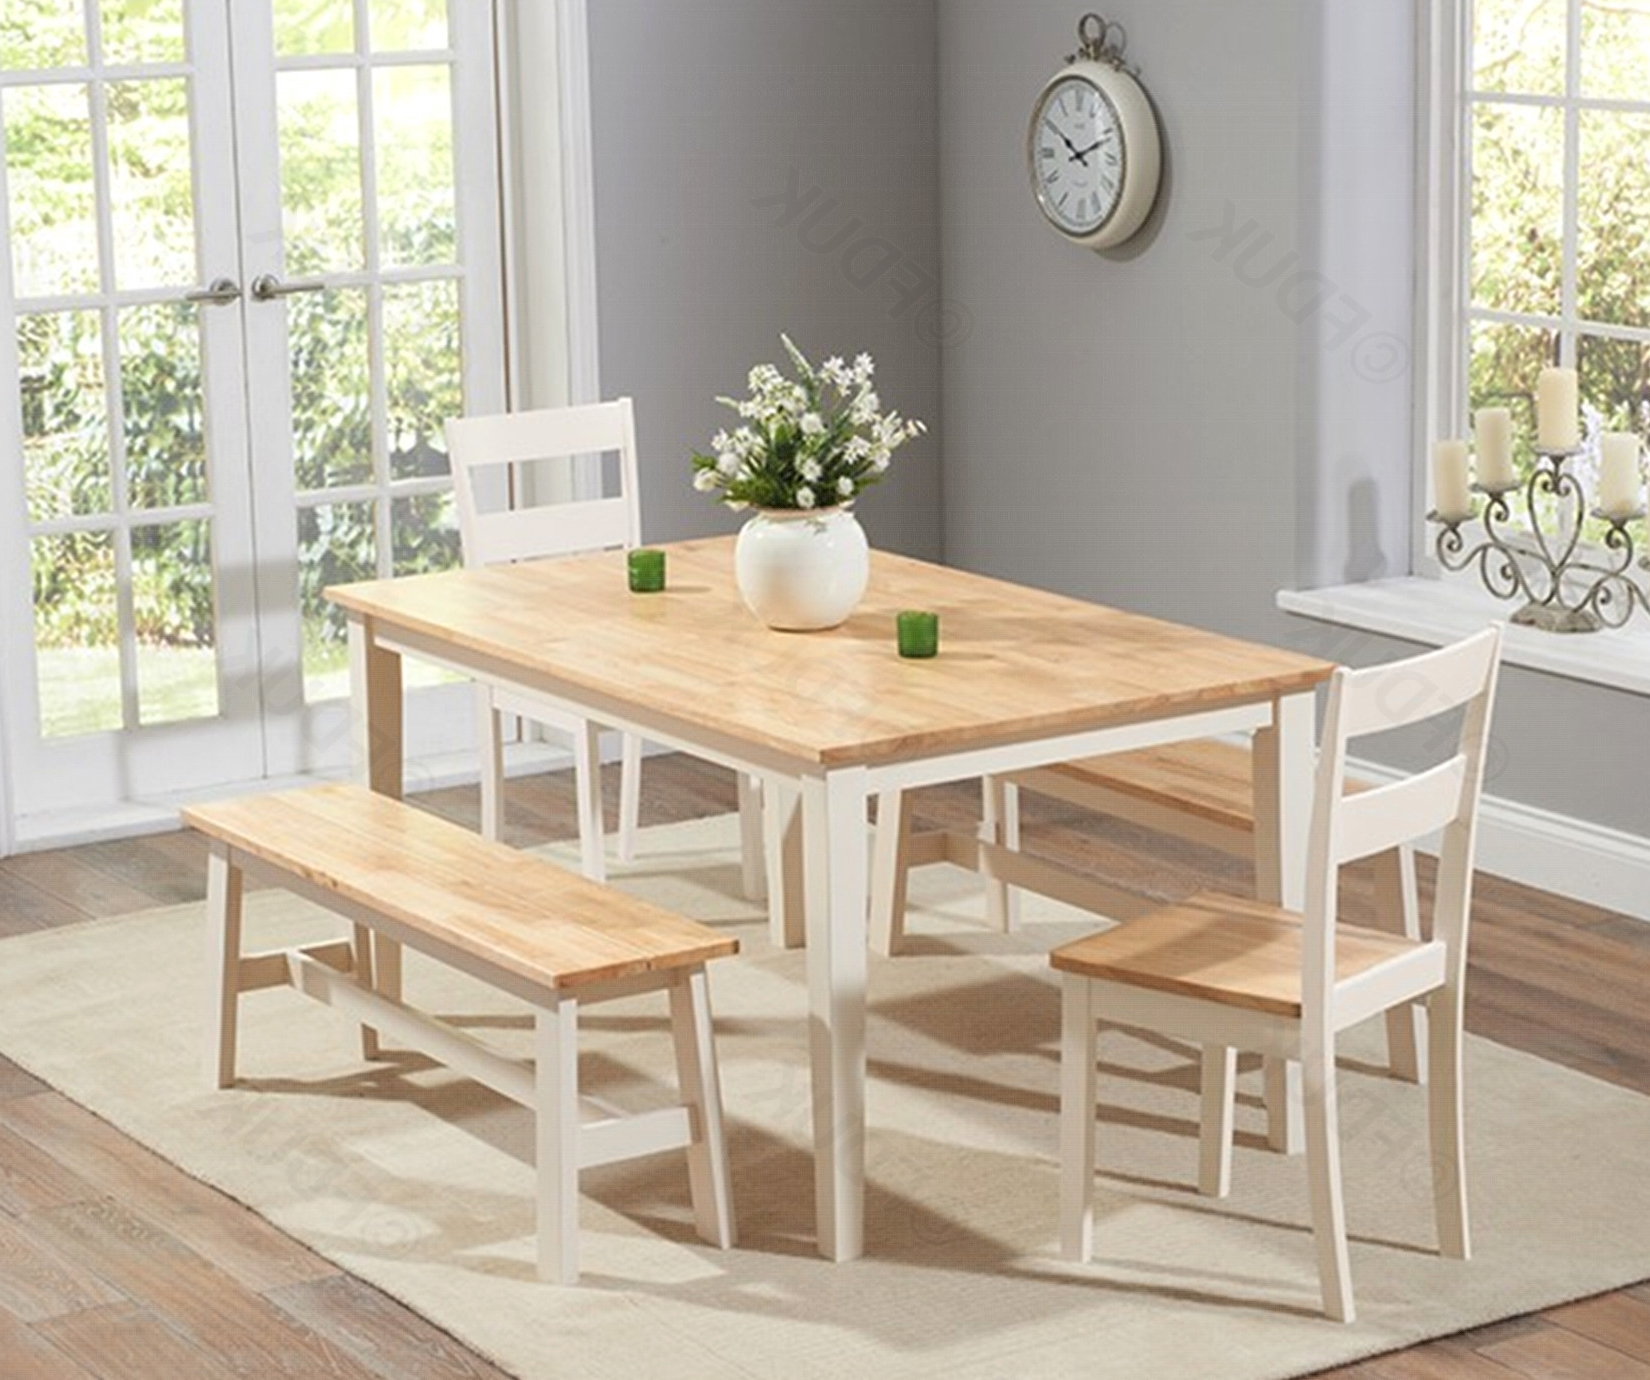 Best And Newest Cream And Wood Dining Tables Intended For Mark Harris Chichester (View 4 of 25)